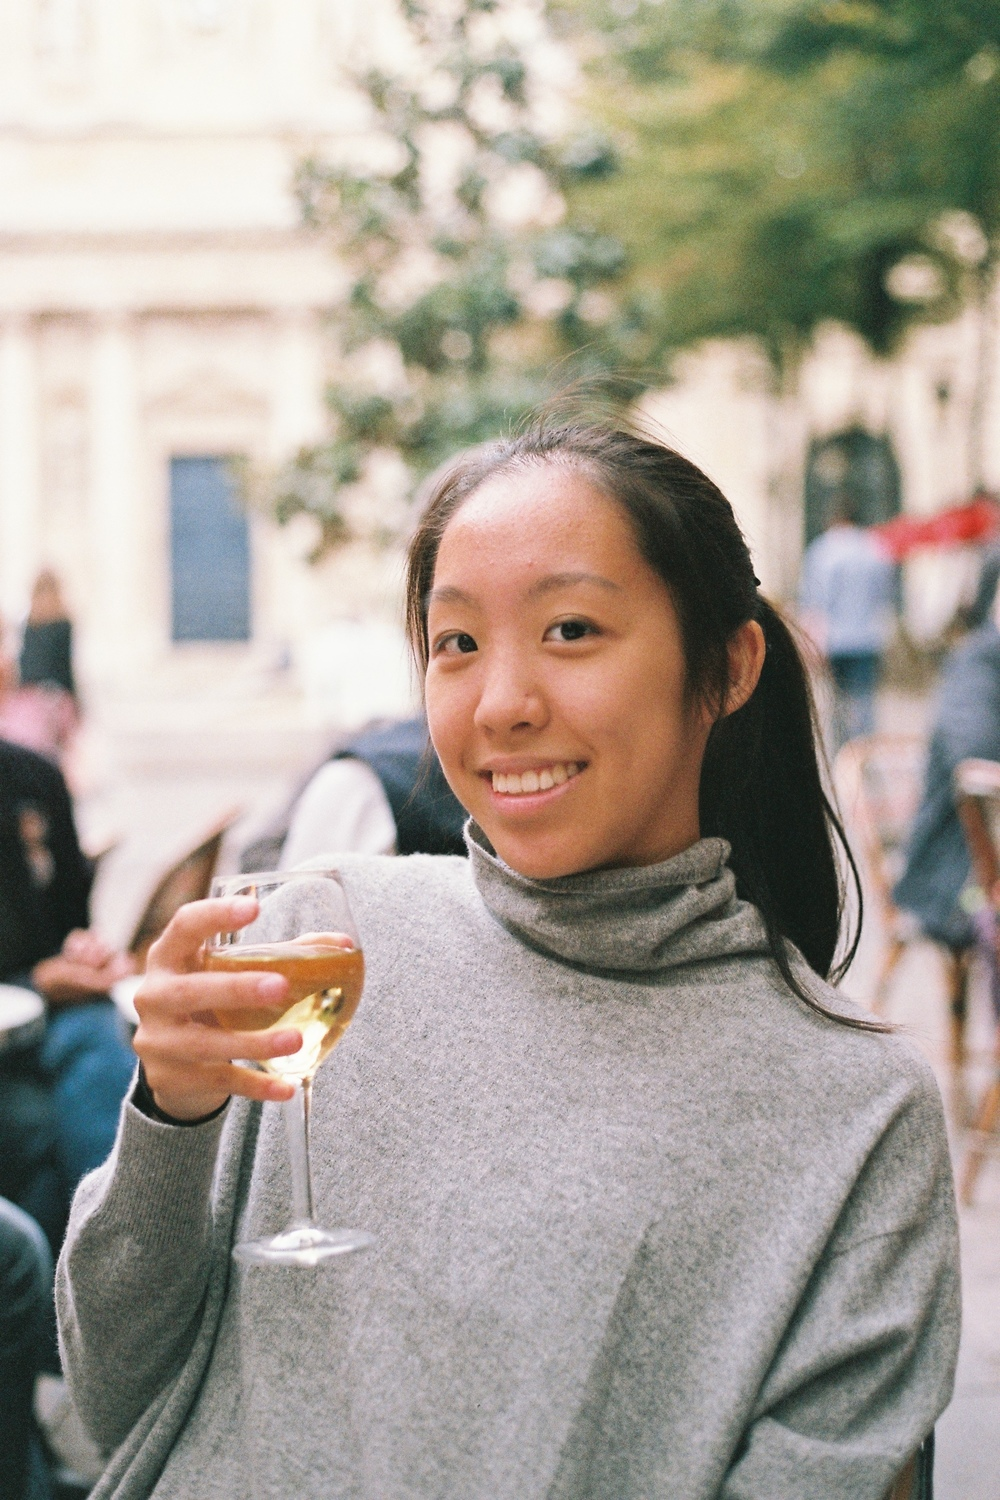 C'est moi, enjoying some Chardonnay, BECAUSE I OFFICIALLY LIVE IN PARIS NOW!!!